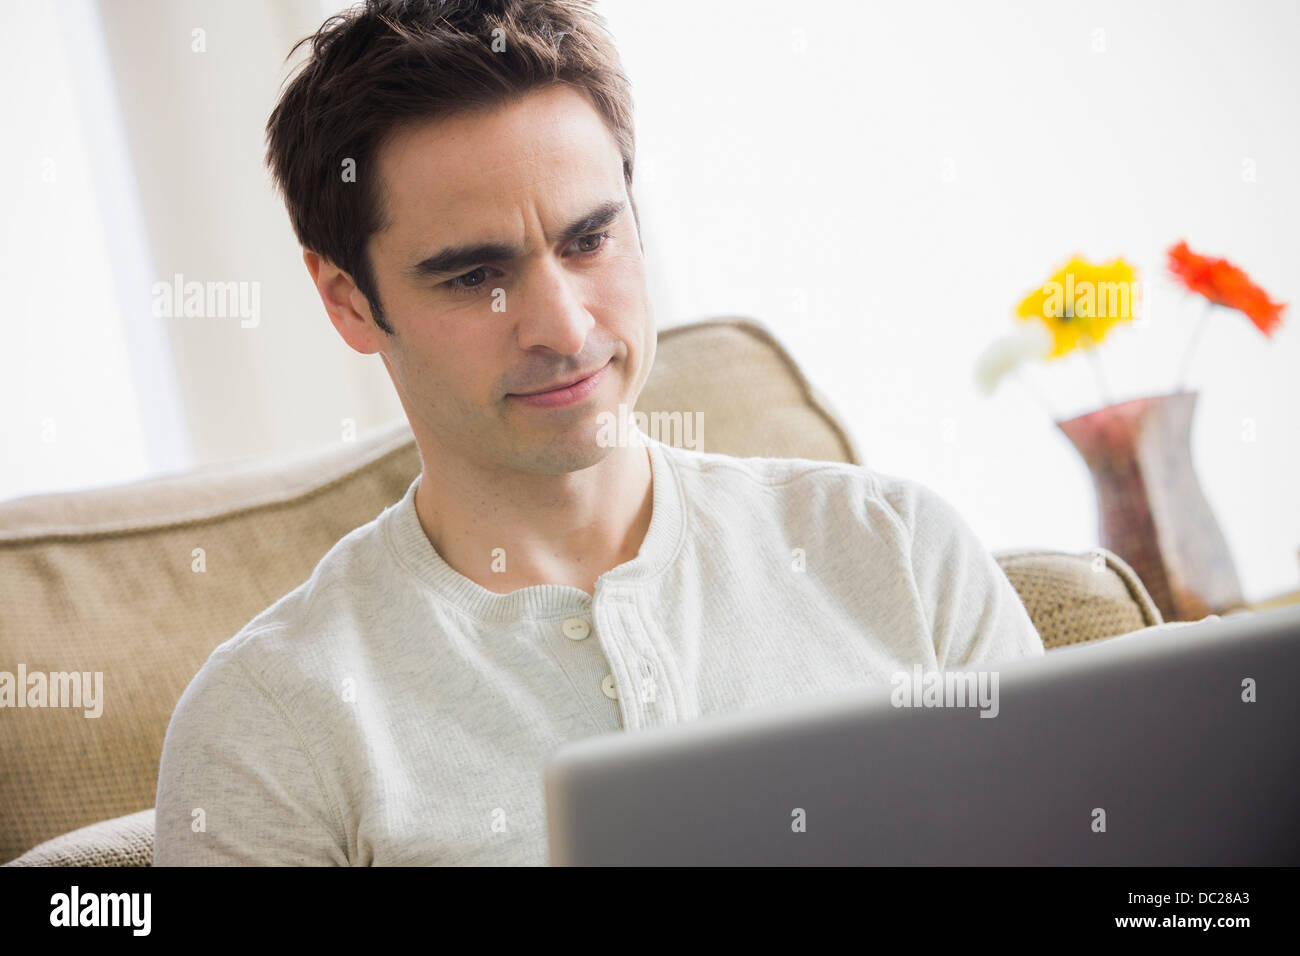 Mid adult man using laptop, frowning - Stock Image